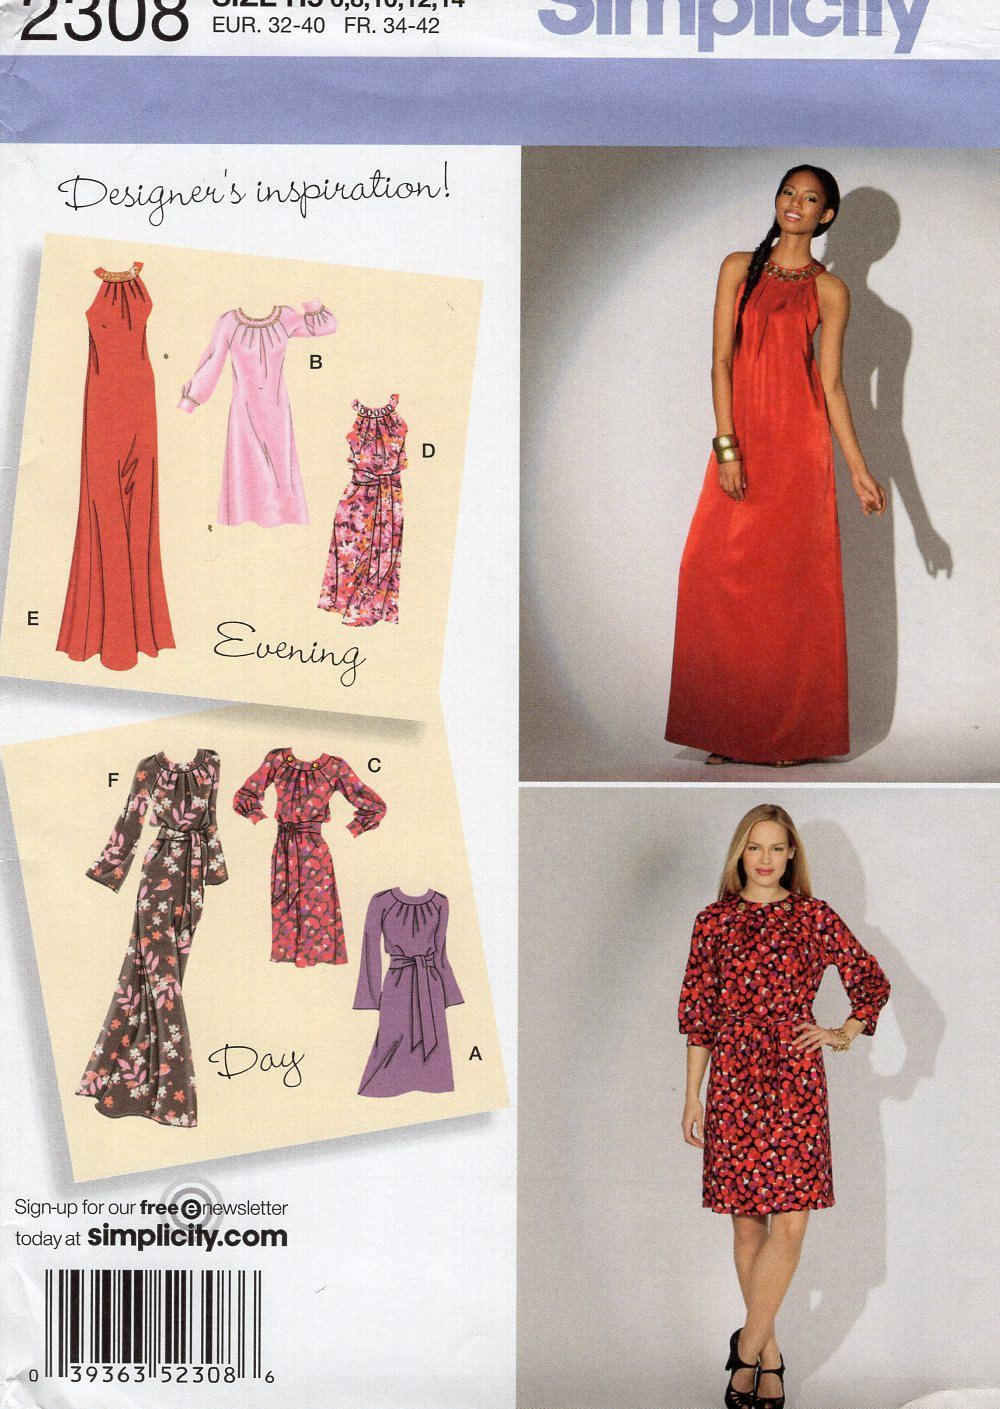 Simplicity 2308 Sewing Pattern Free Us Ship Day Evening Dress Uncut ...